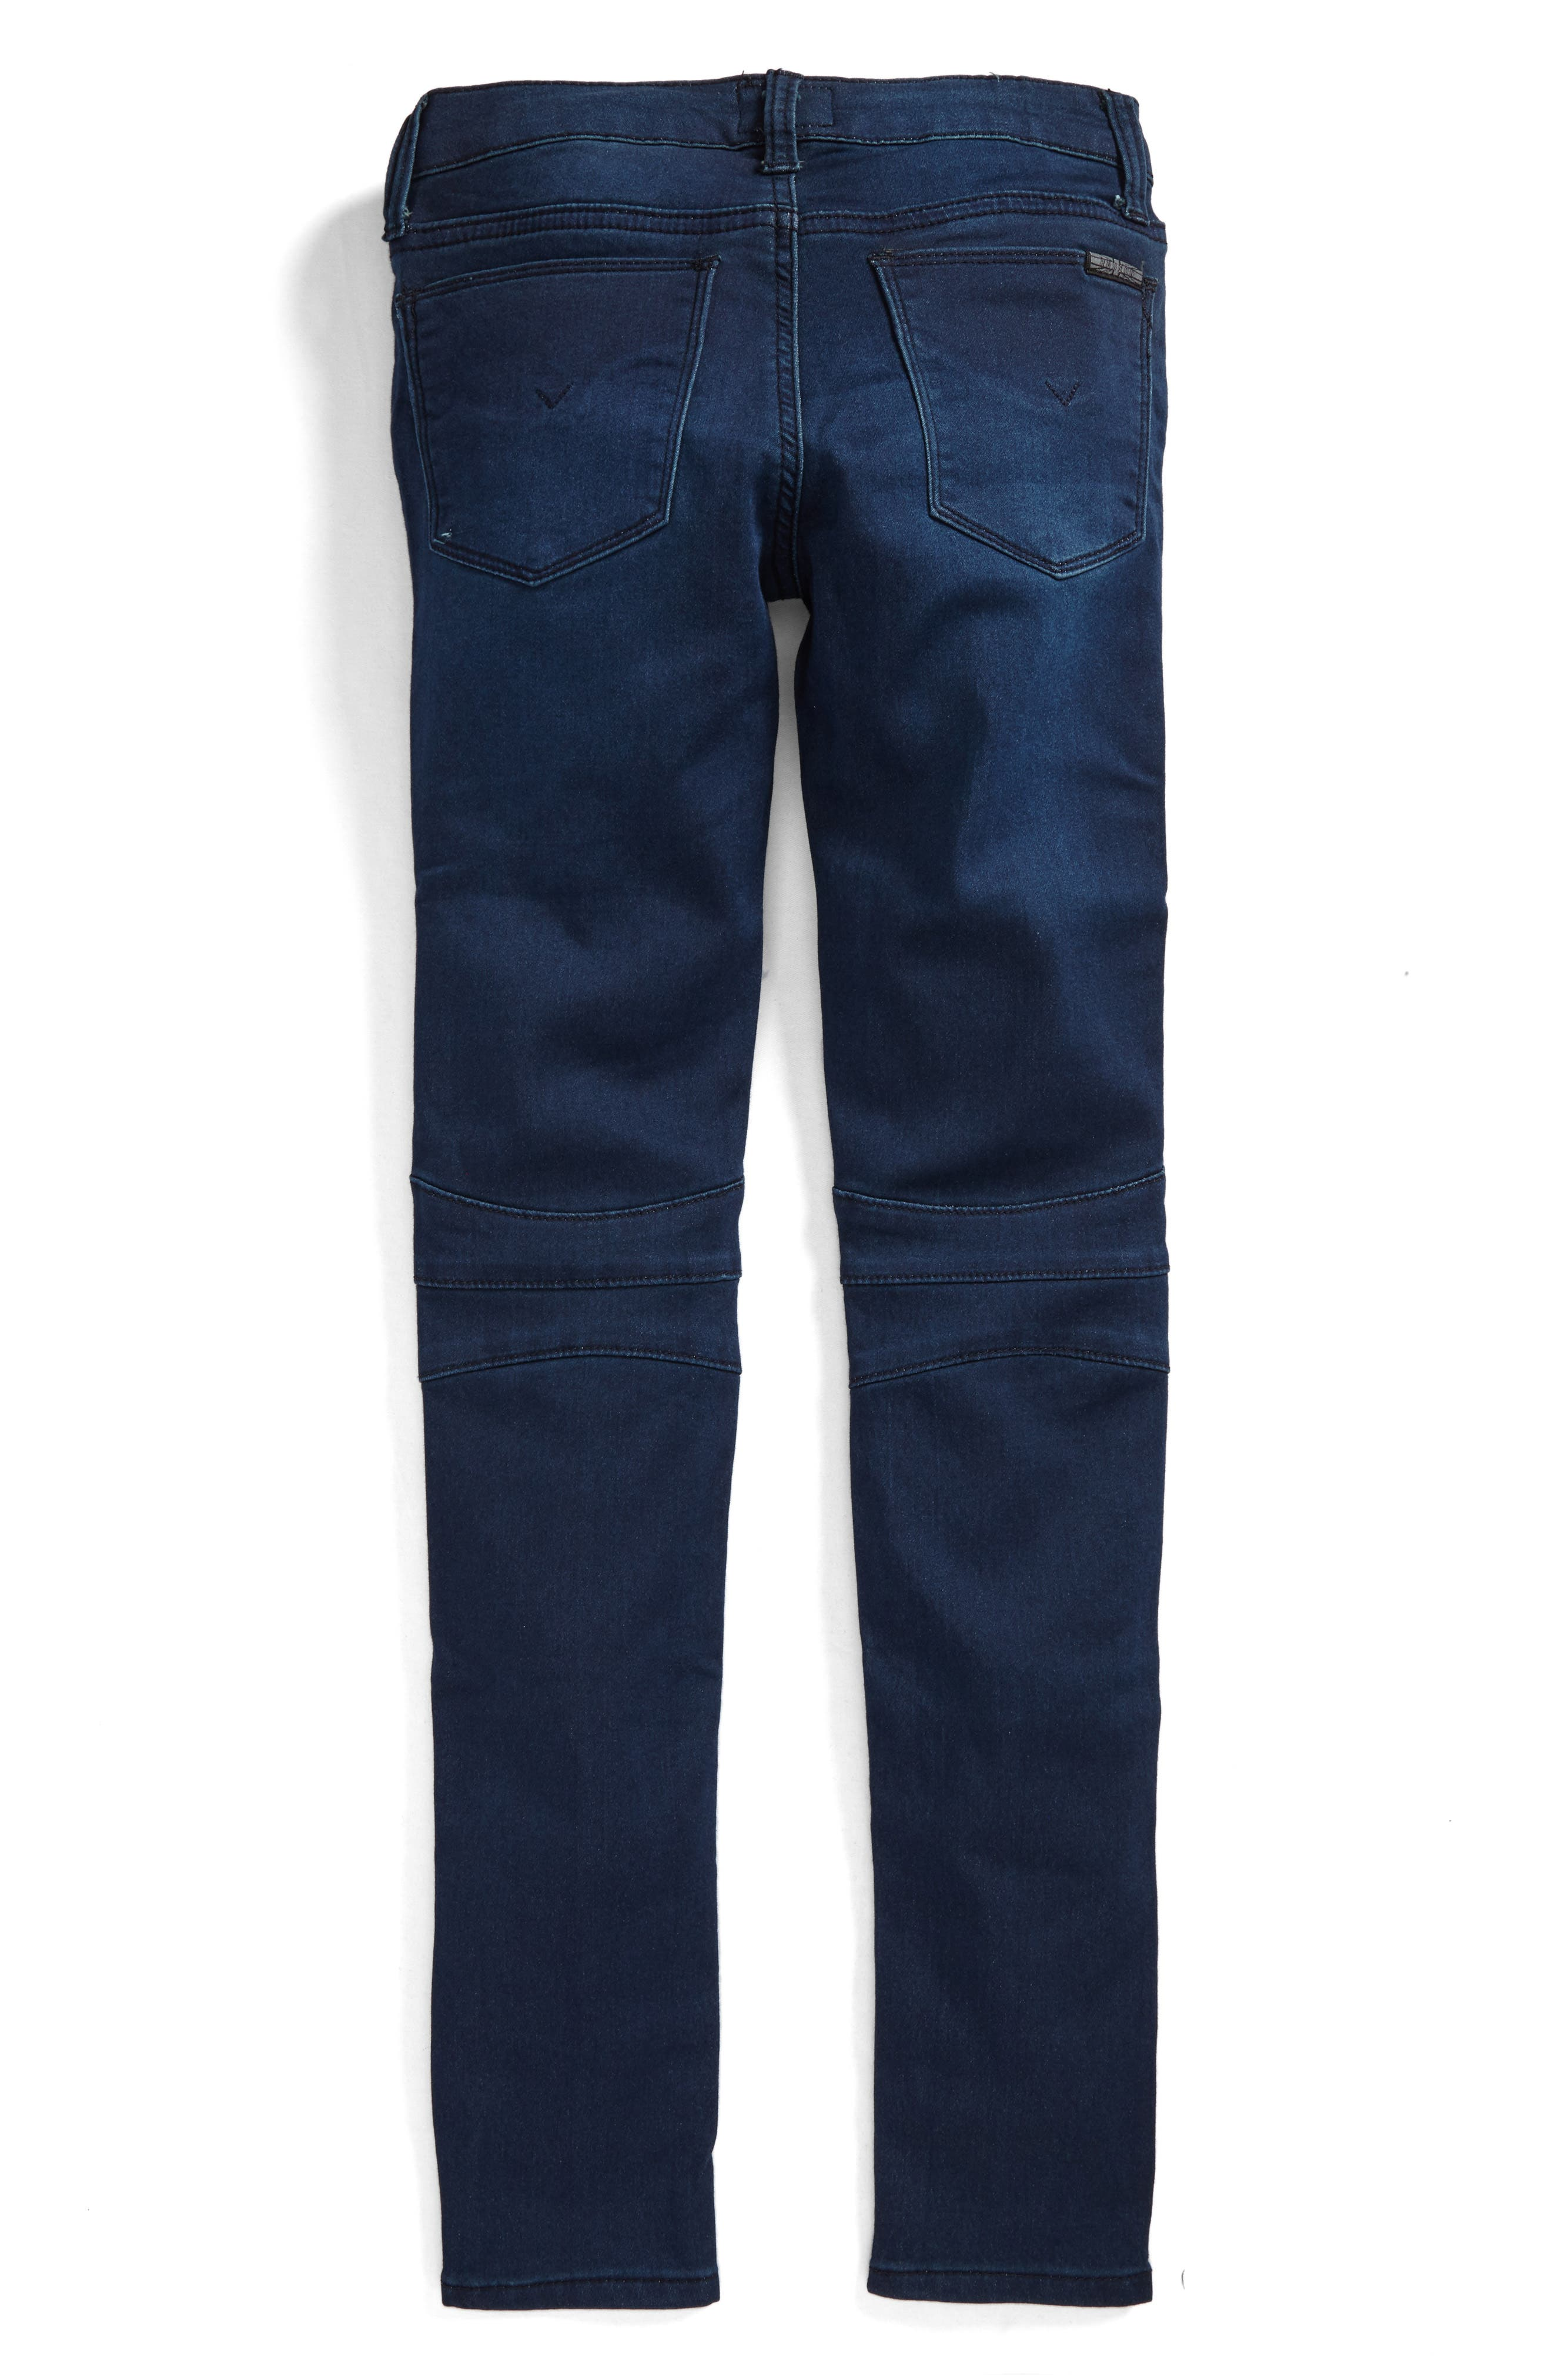 Alternate Image 2  - Hudson Kids French Terry Moto Jeans (Big Girls)